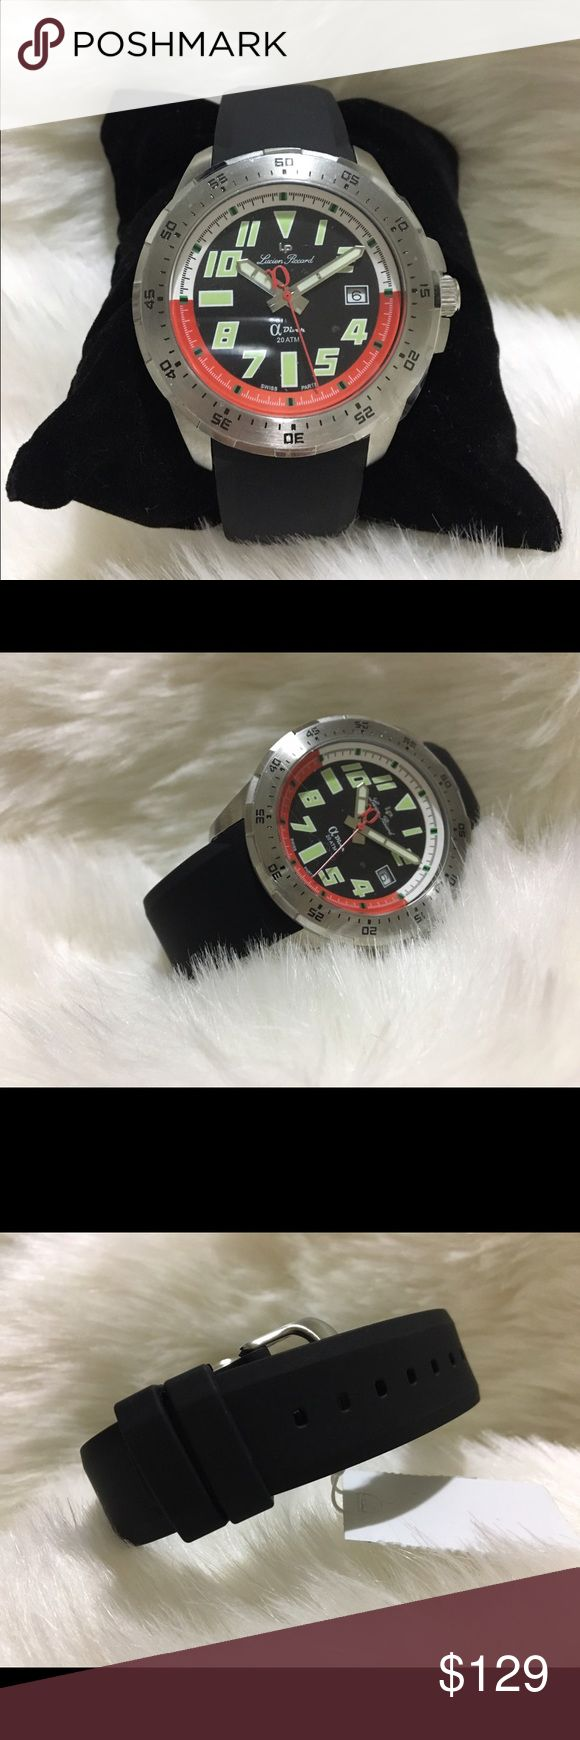 Men Brand new sport watch Lucien Piccard Brand new watches. Newer worn . Comes with original box and original papers. Lucien Piccard Accessories Watches